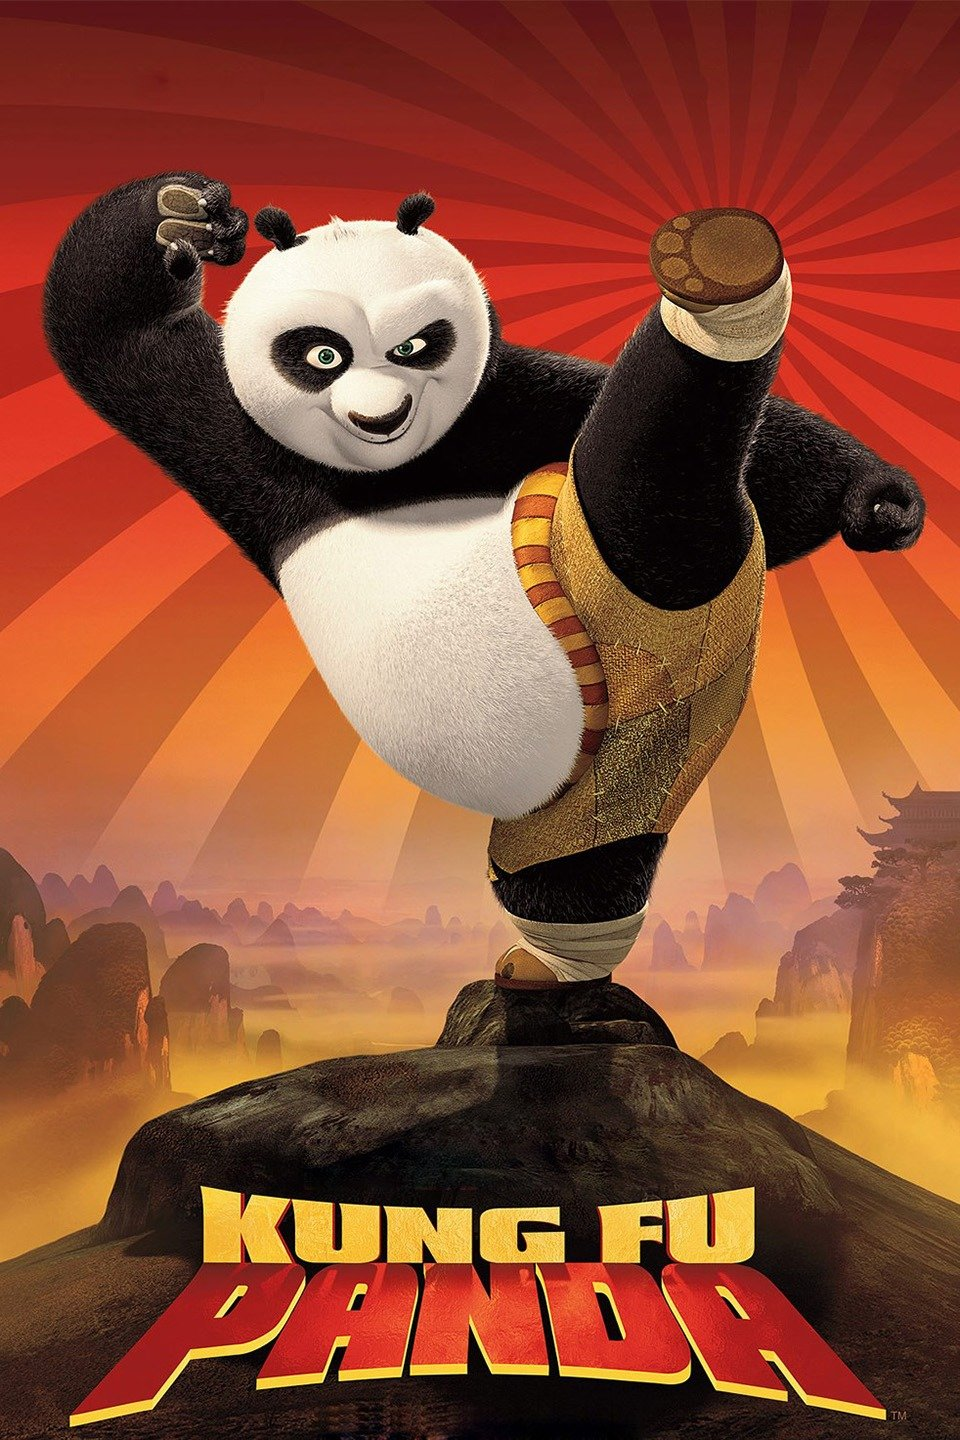 RE: Ada yang tau link download kungfu panda 1 ?